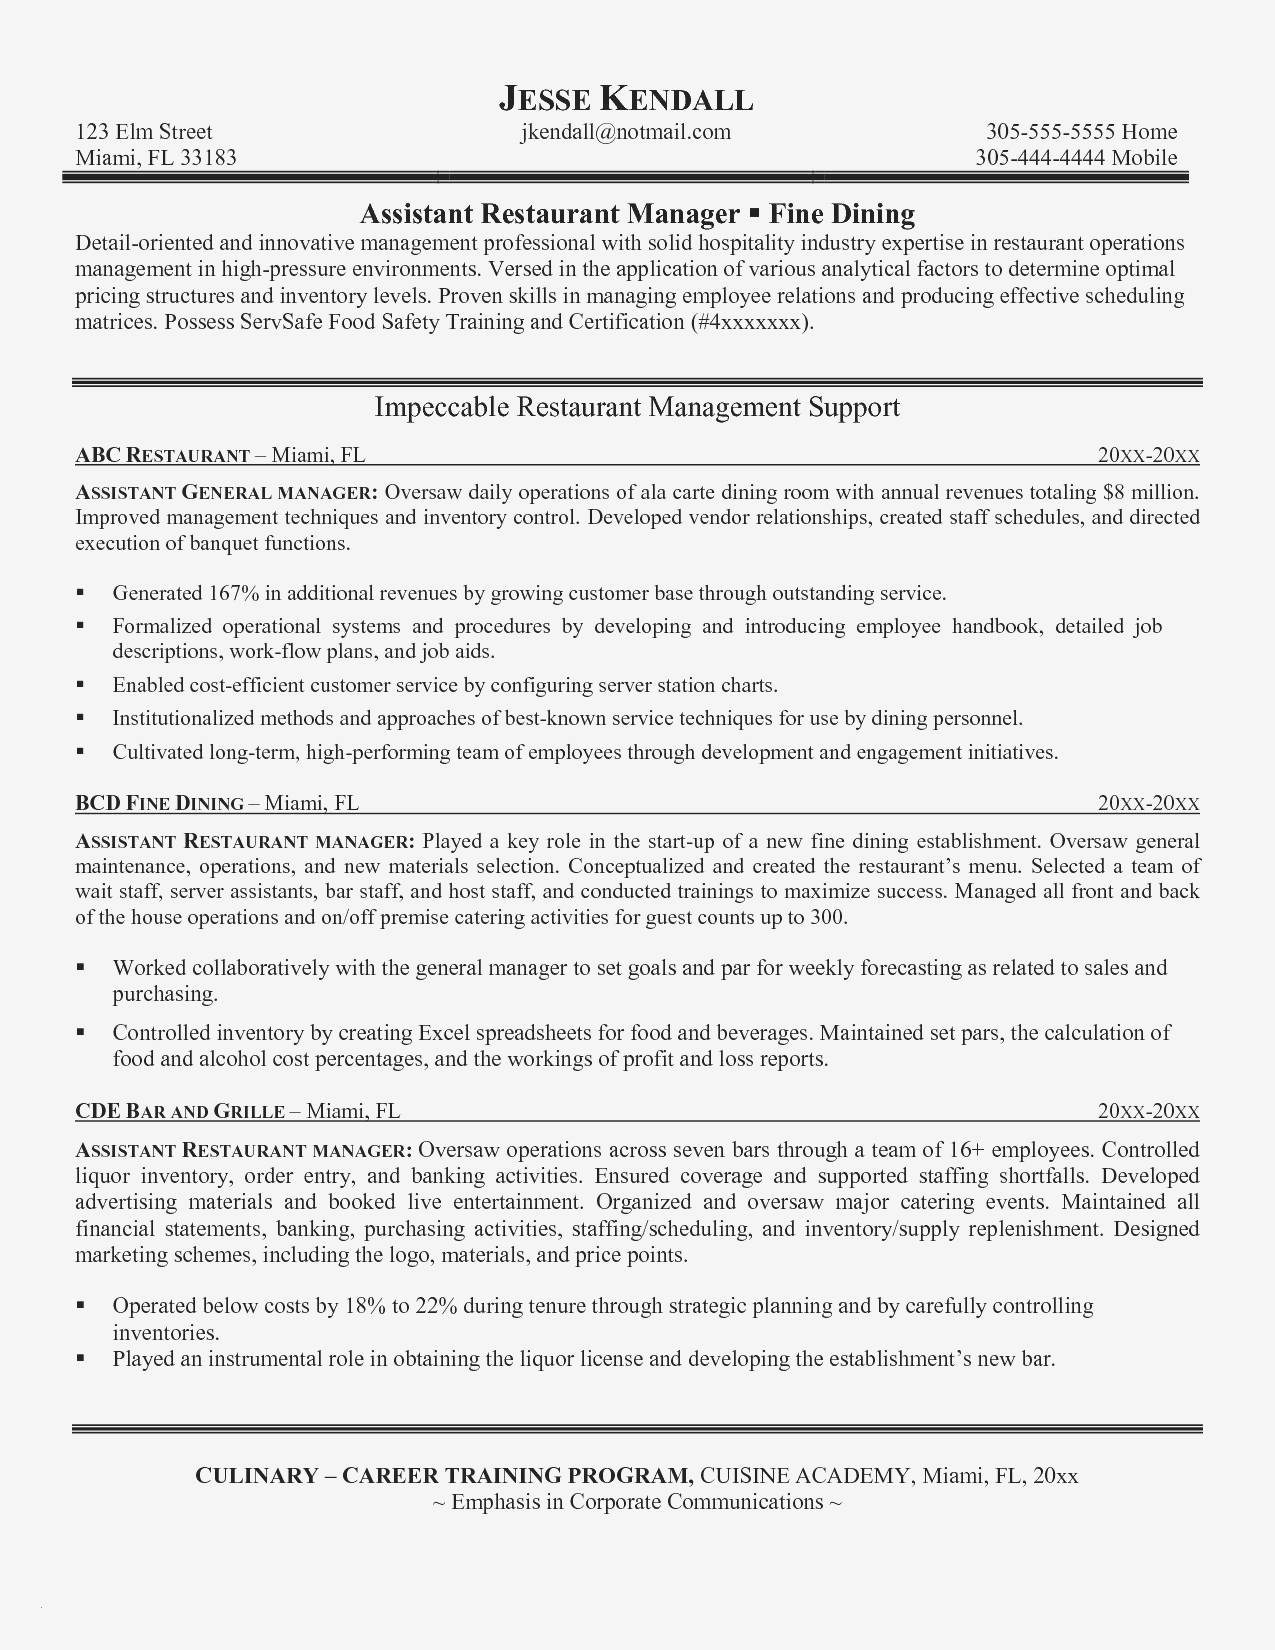 Resume Template For Assistant Restaurant Manager